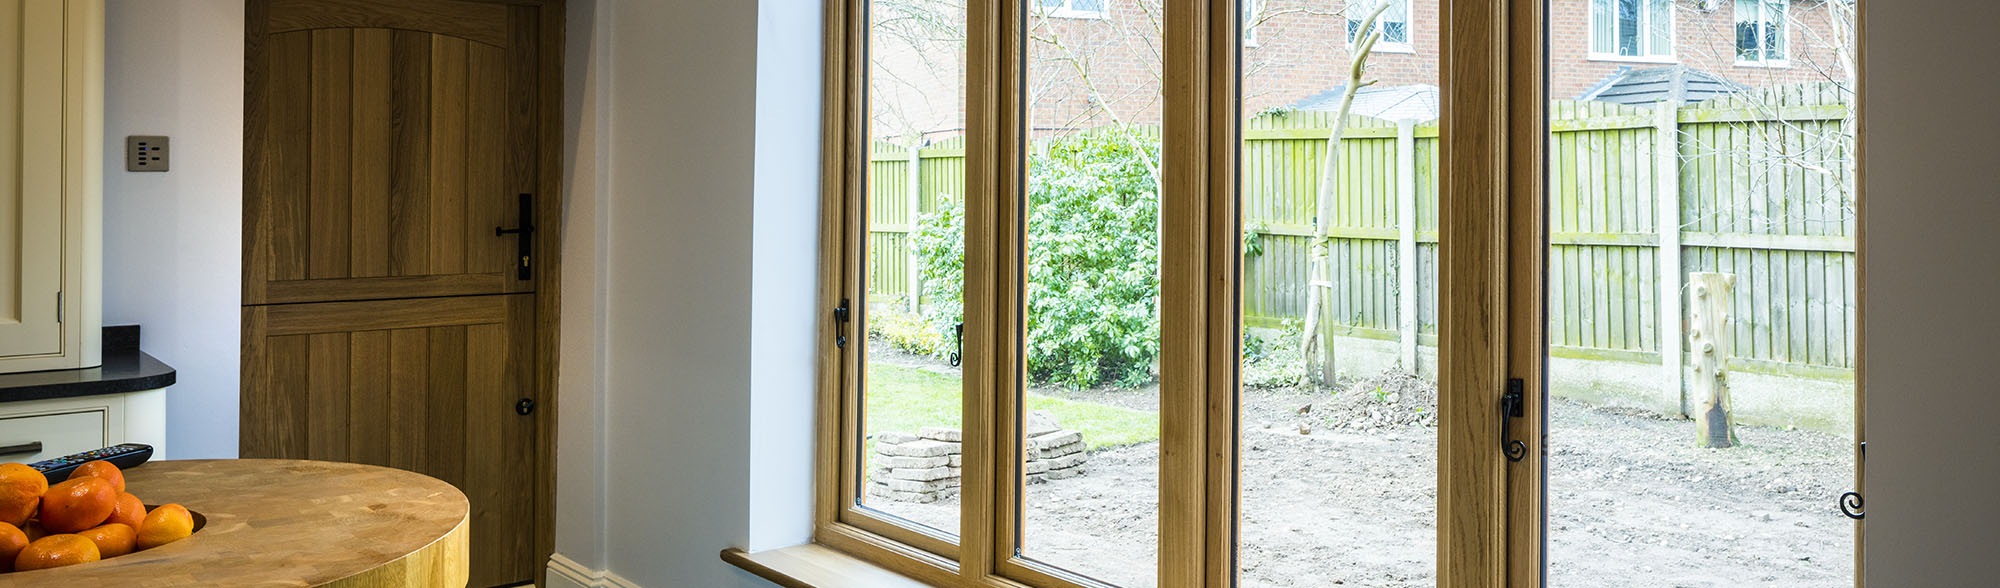 Bespoke Wood Windows